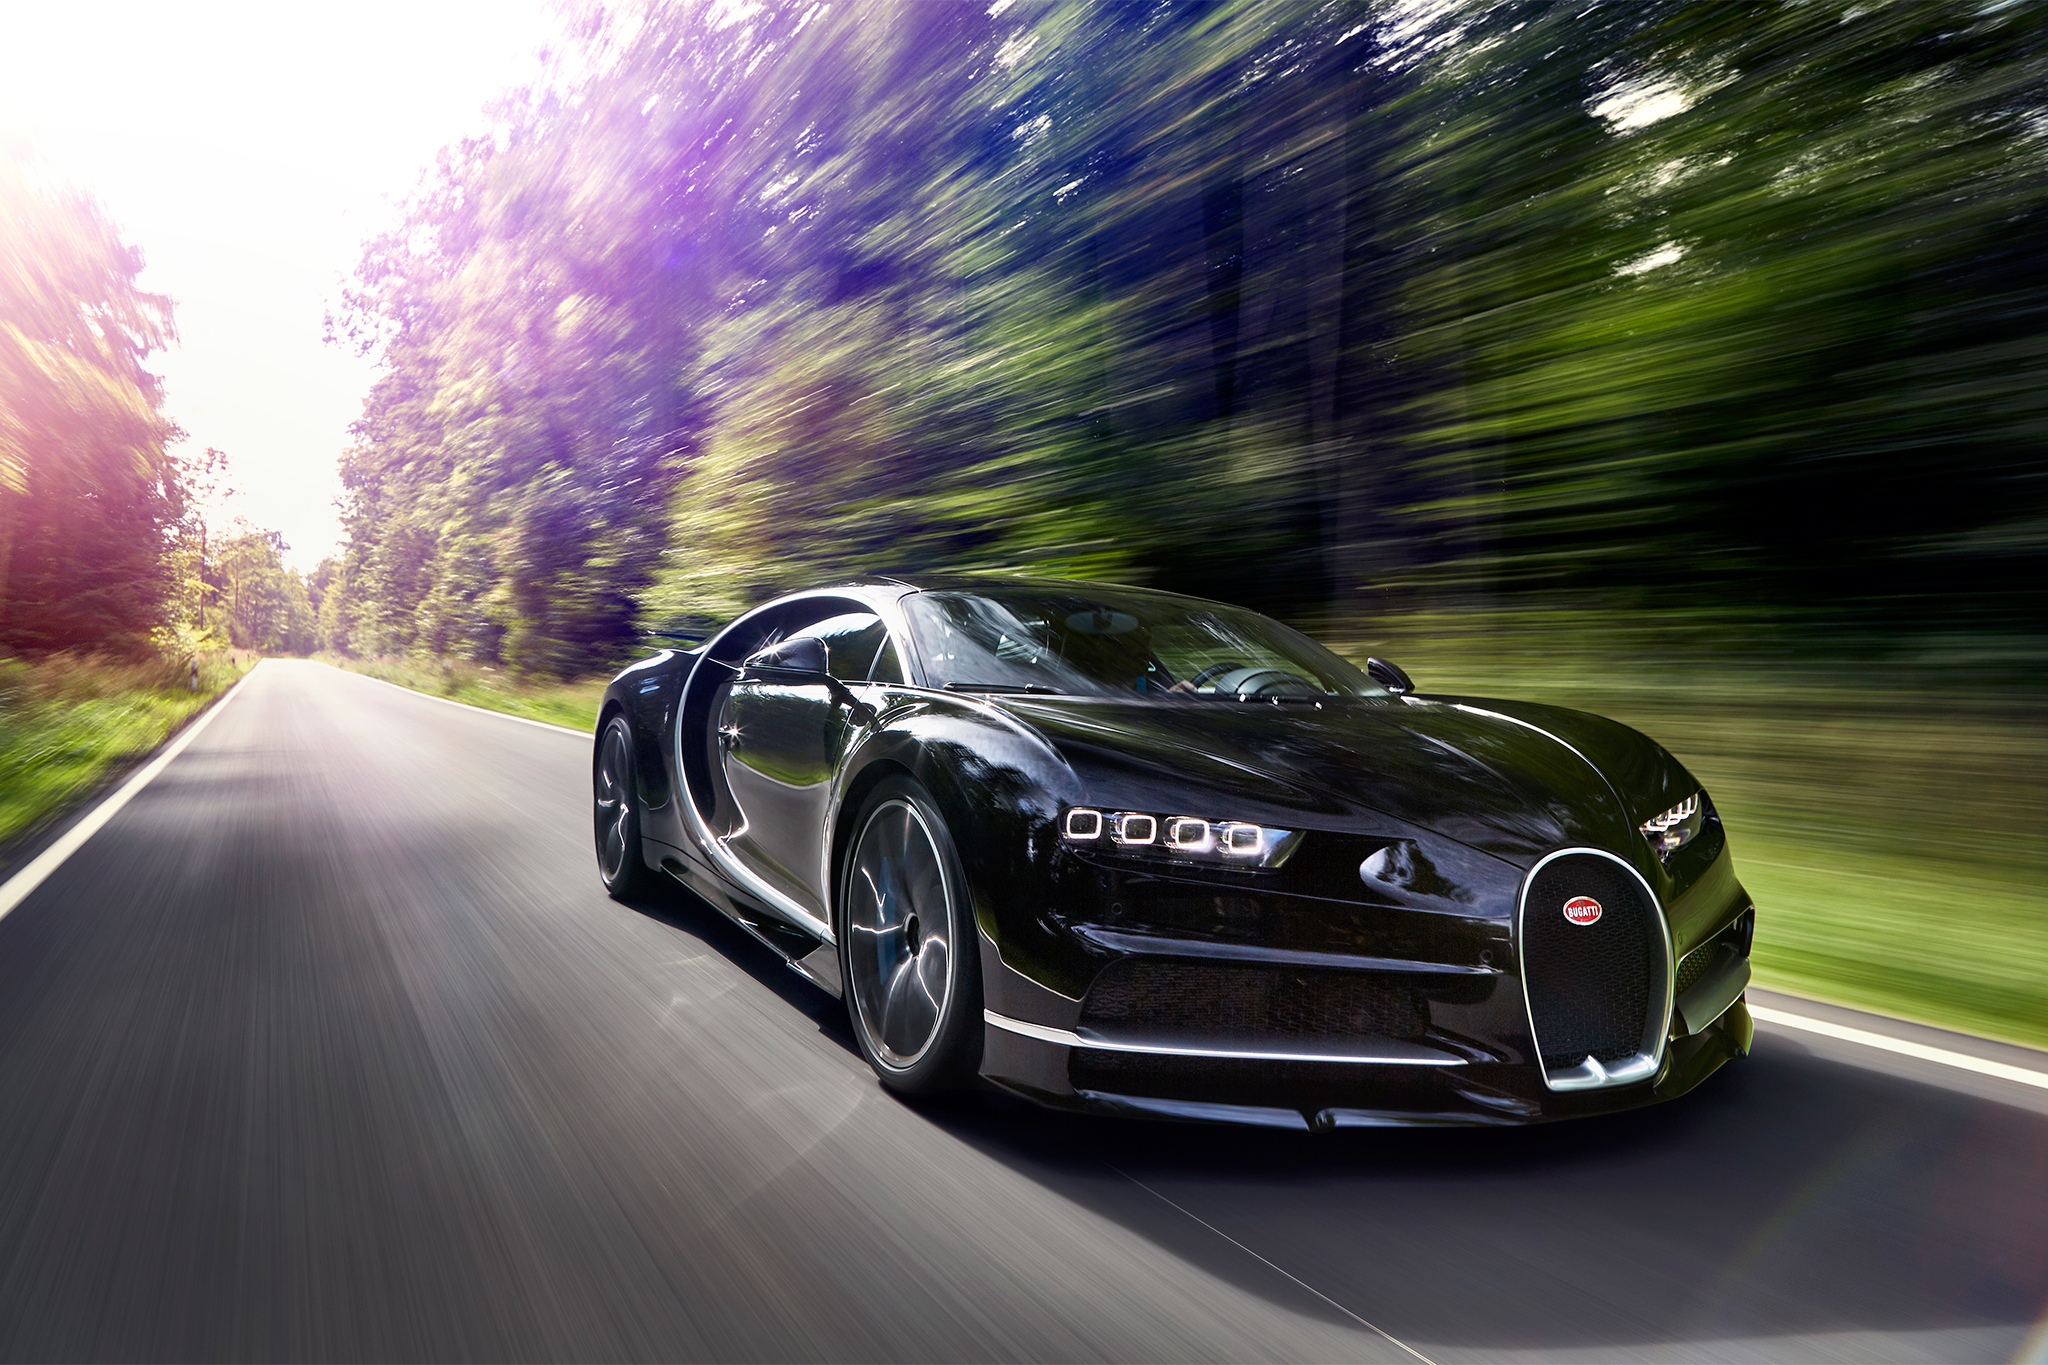 2017 bugatti chiron in motion, hd cars, 4k wallpapers, images